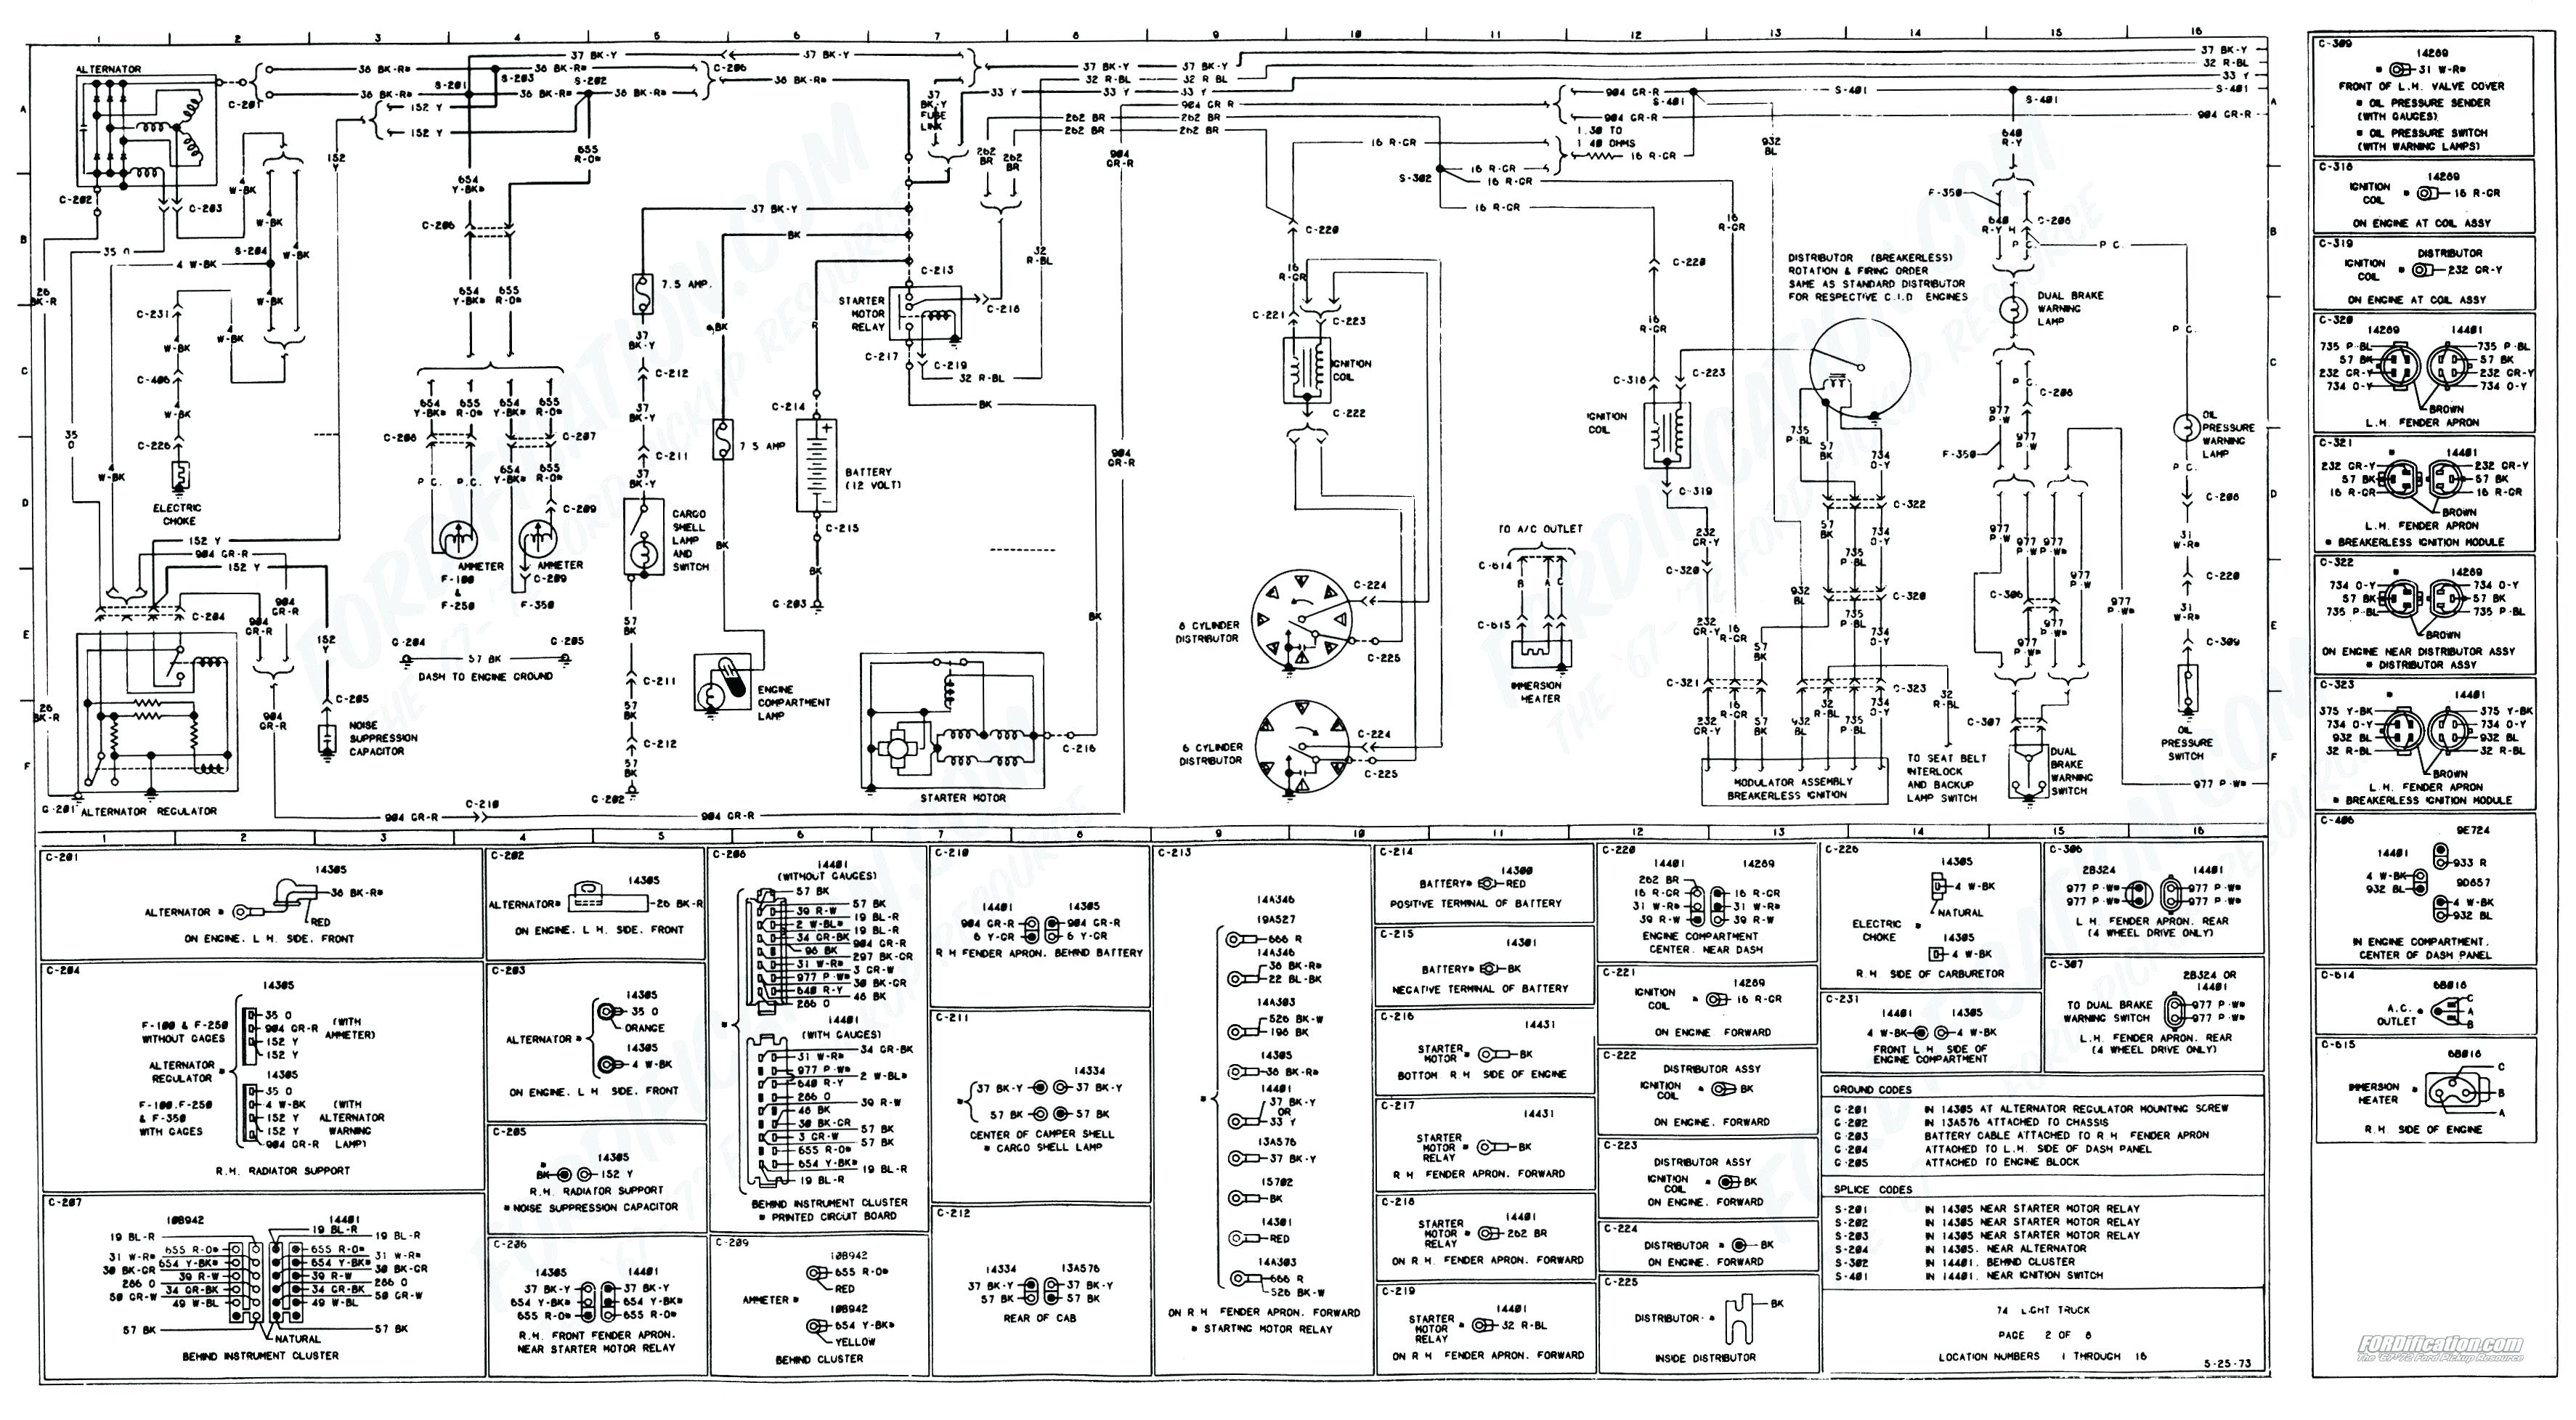 ford f650 wiring diagram gallery rh wholefoodsonabudget com 2004 F650 Fuse Box Diagram 2006 F650 Fuse Panel Layout